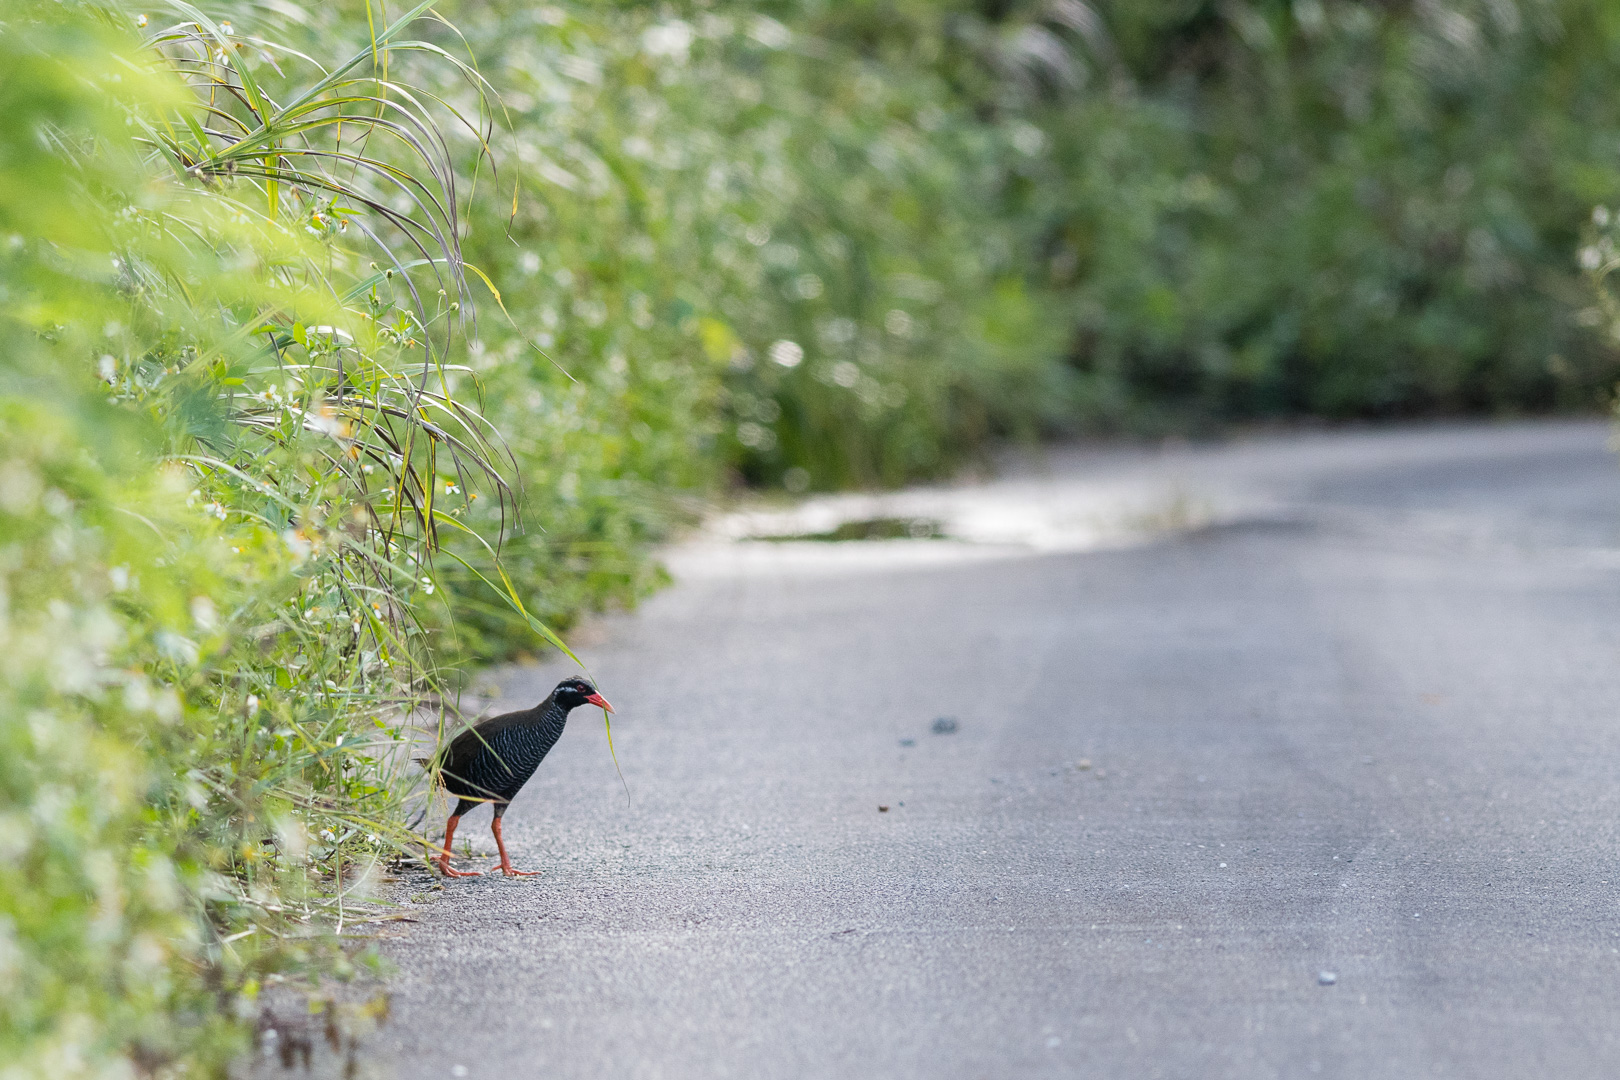 photo of an Okinawa rail